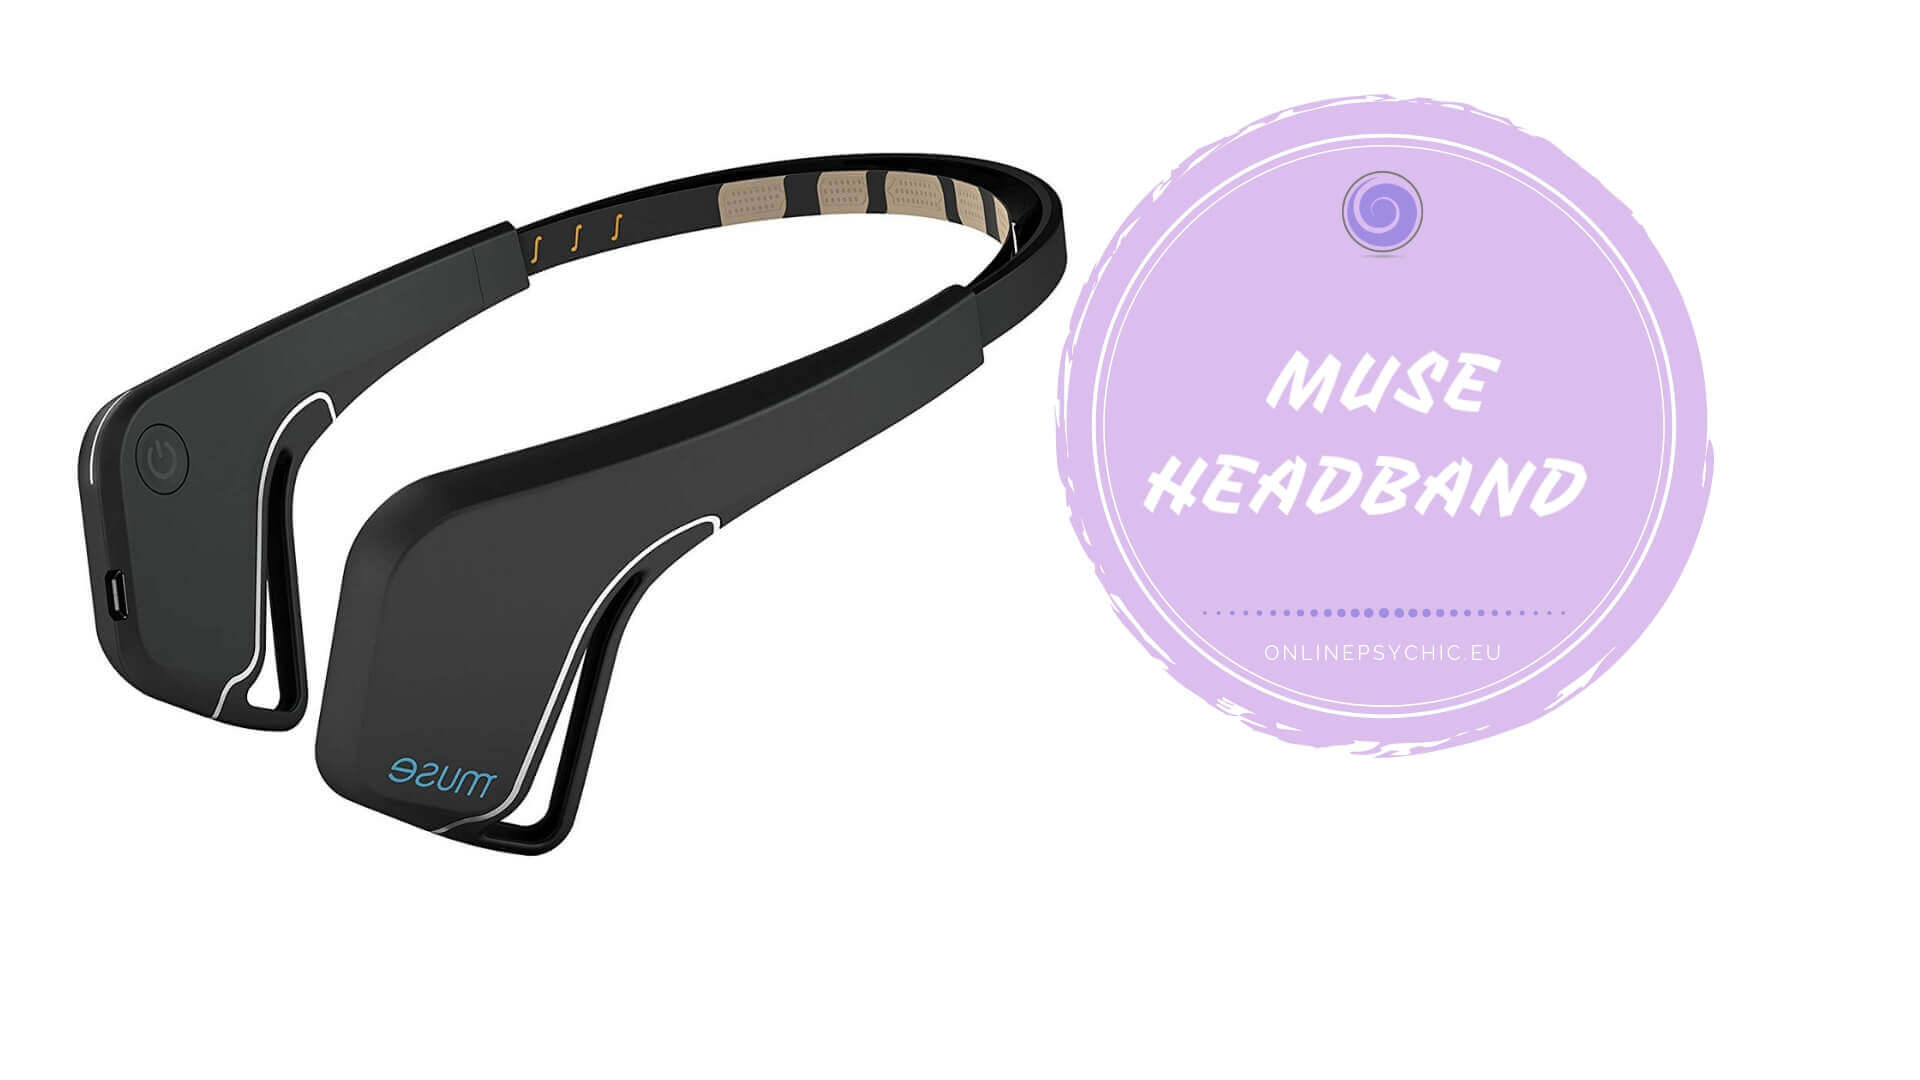 muse headband on amazon